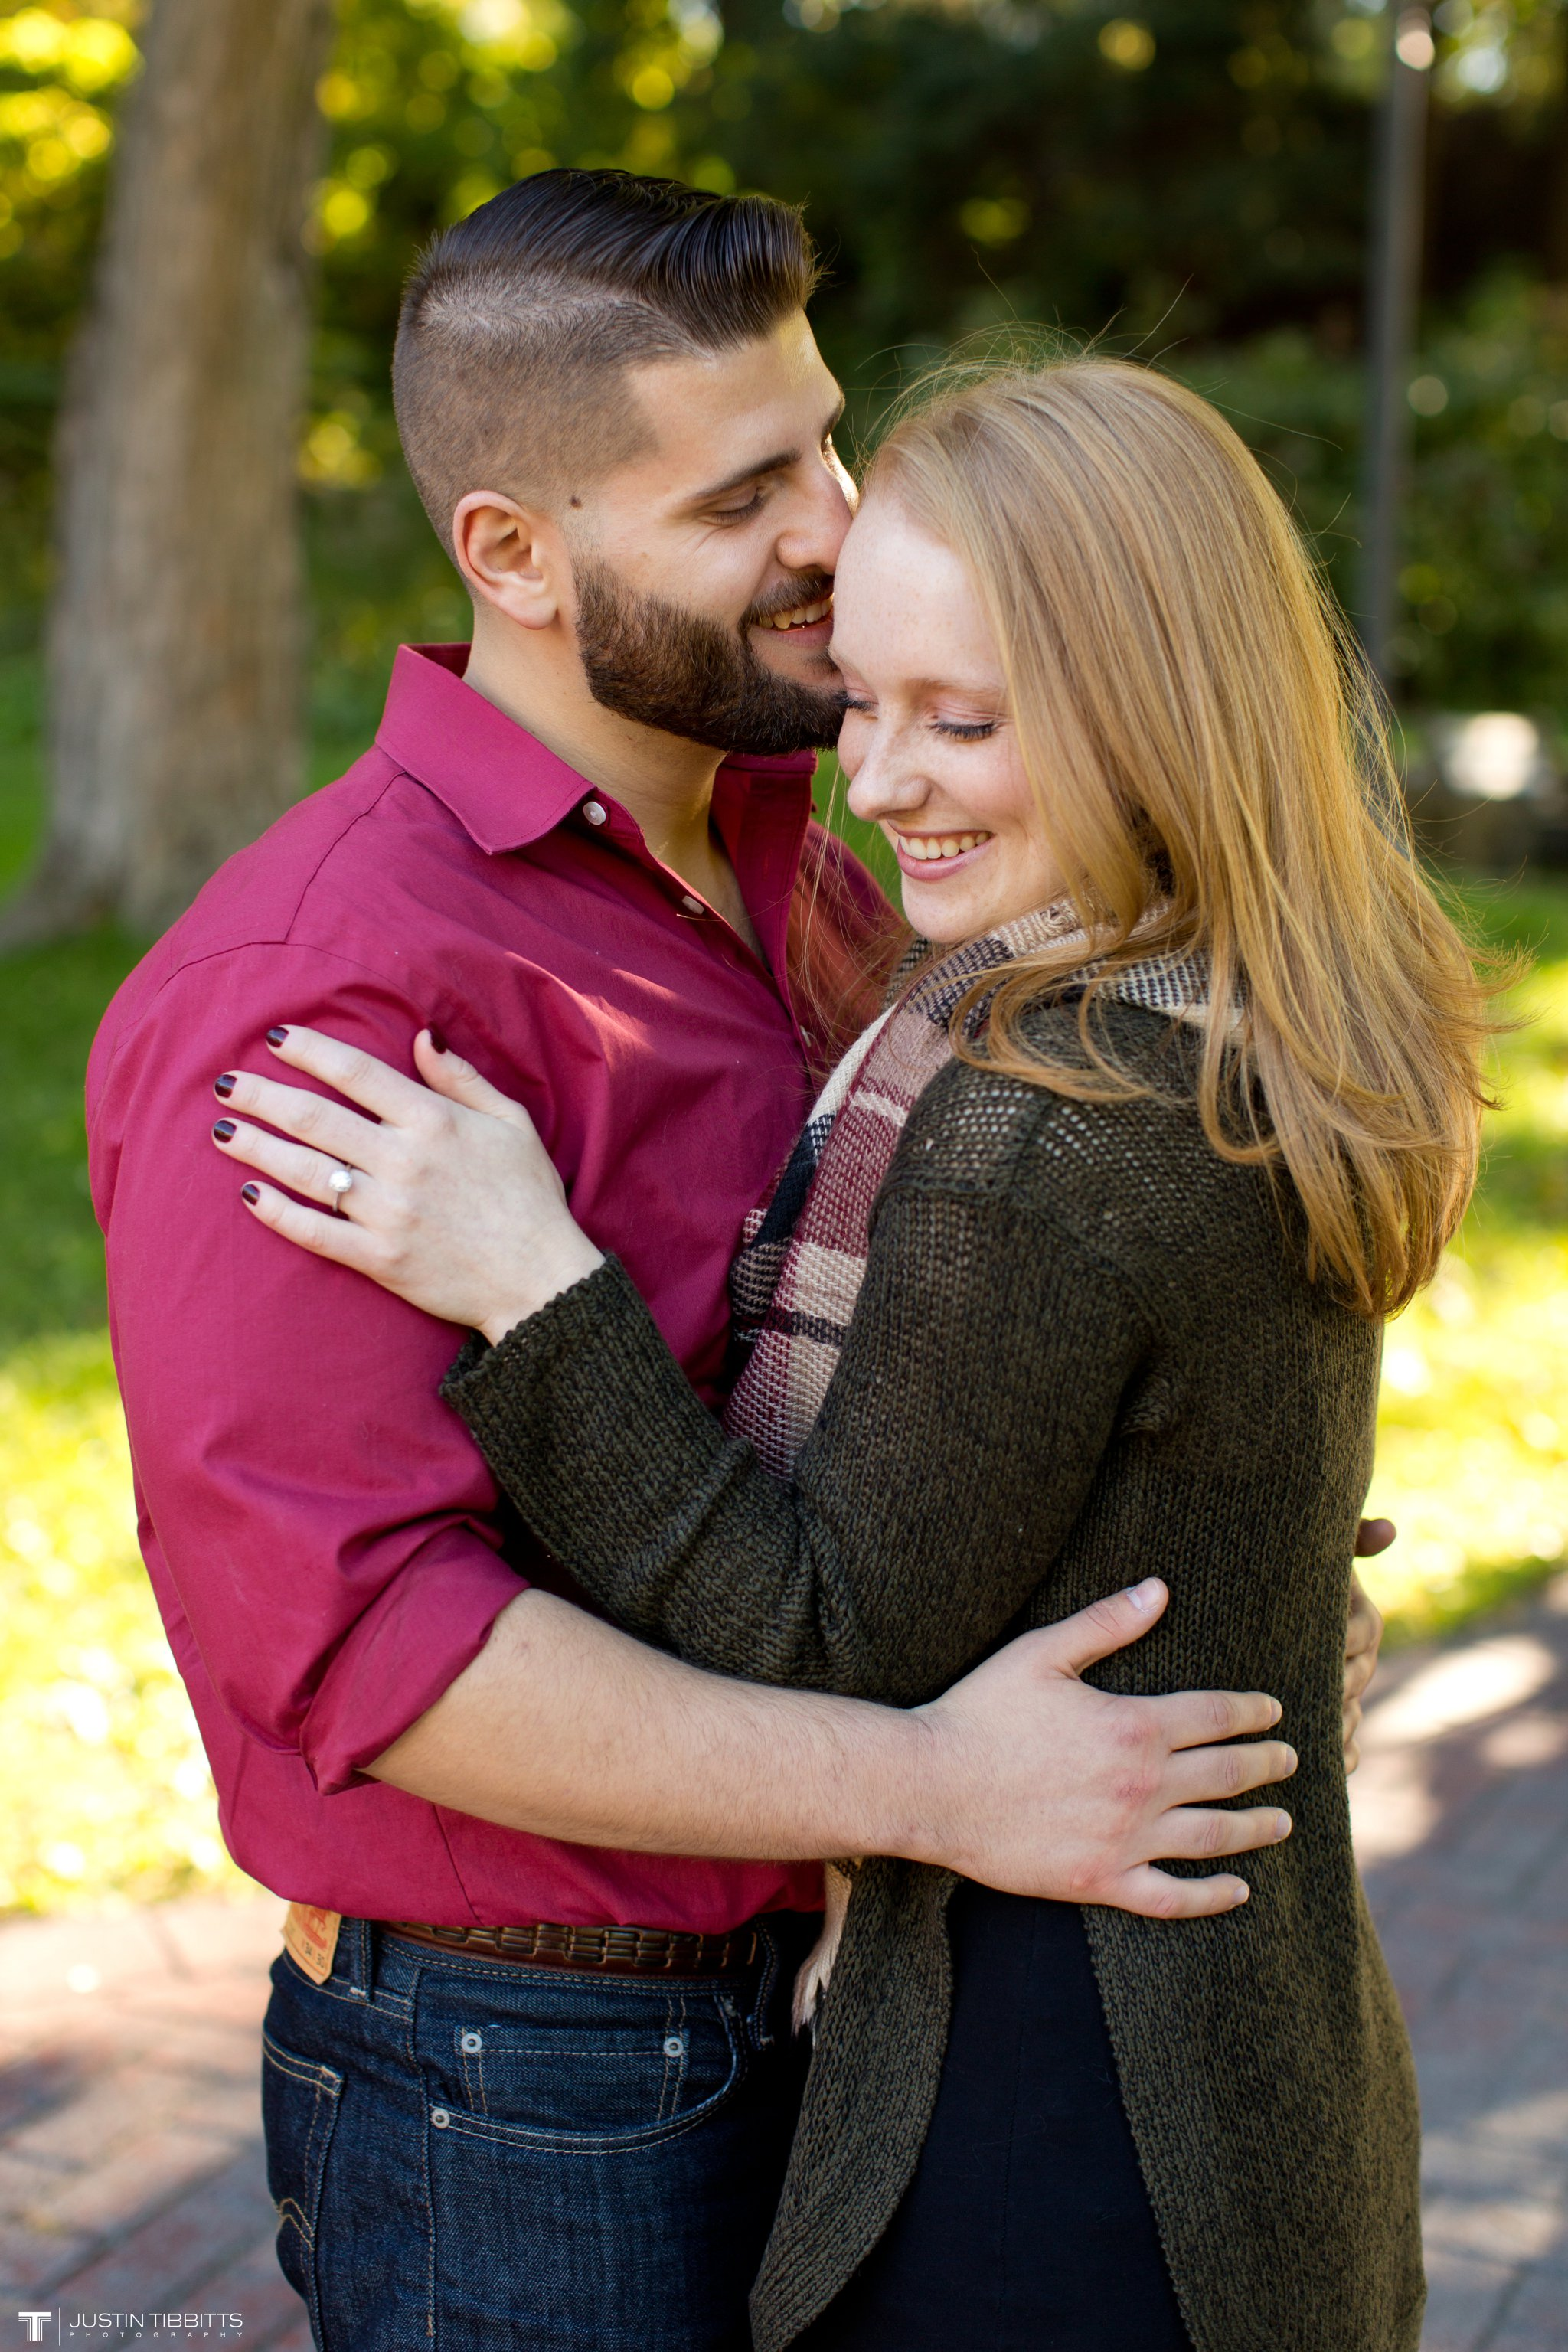 congress-park-saratoga-springs-engagement-photos-with-lauren-and-nick_0004